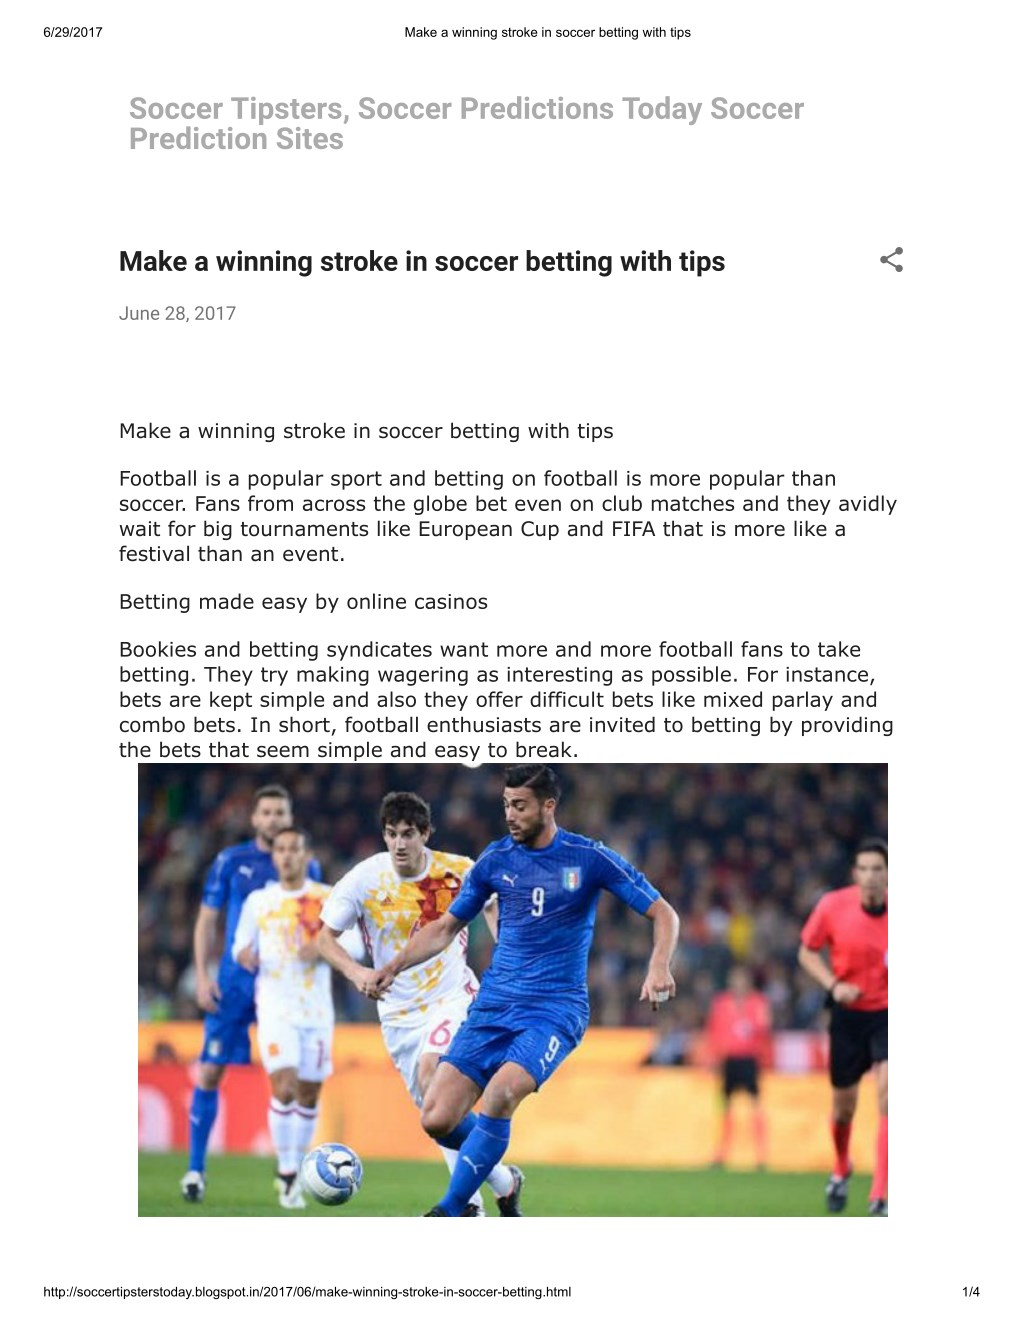 PPT - Make a winning stroke in soccer betting with tips